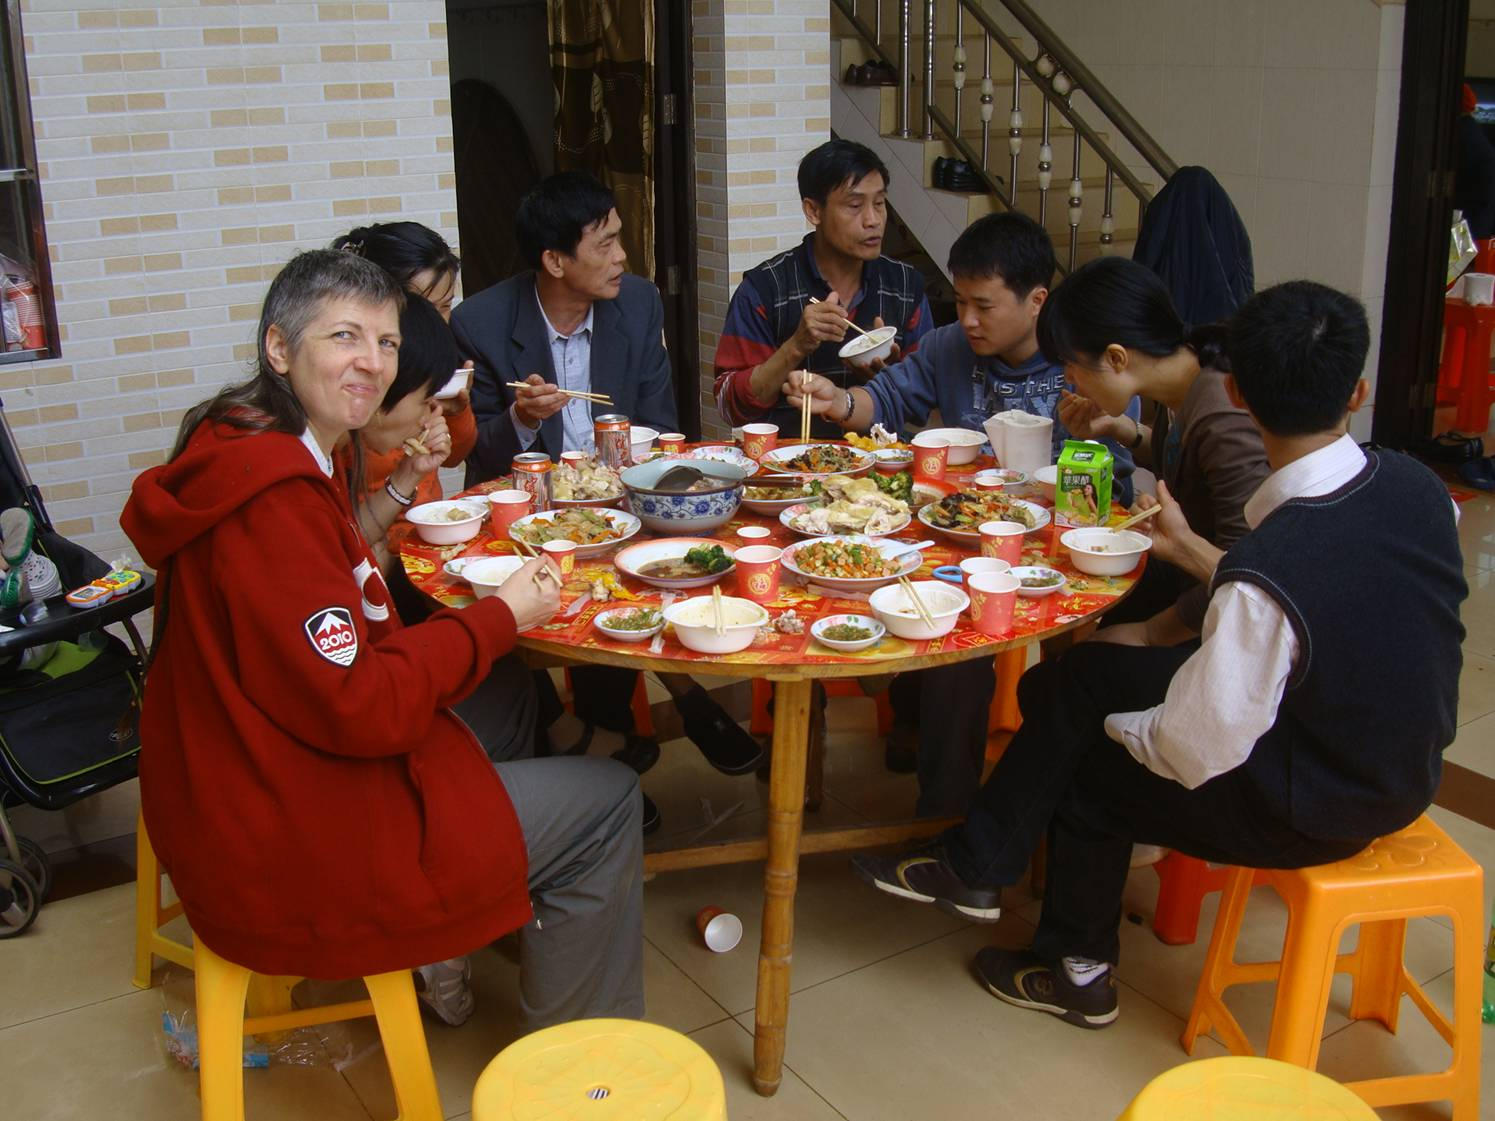 Picture:  Lunch with Xiao Hua's family in Yan Feng village near Haikou on Hainan Island, China